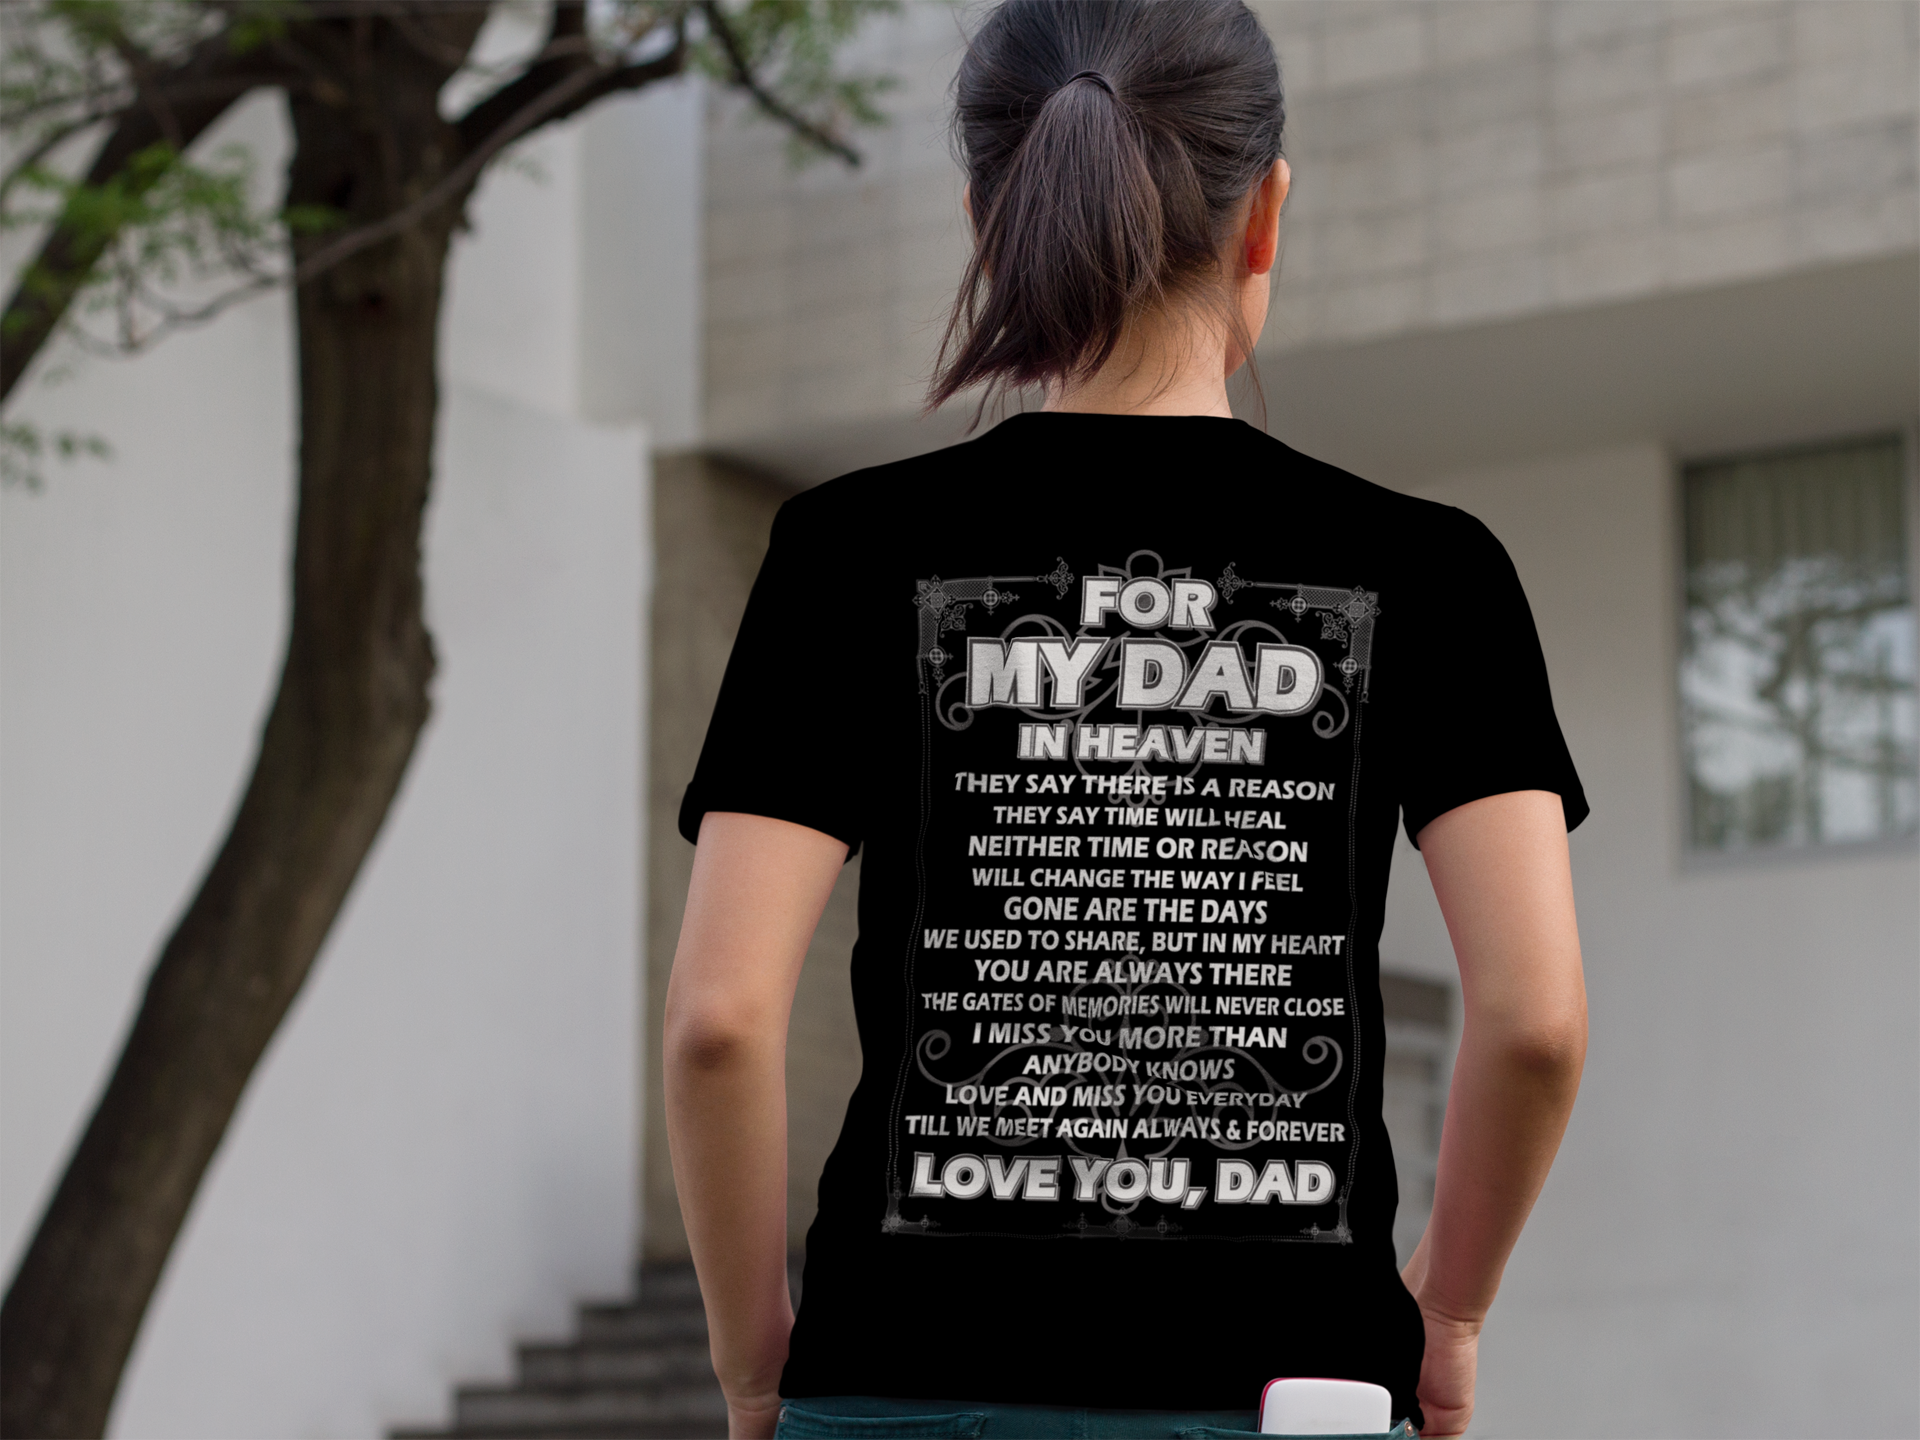 5a5f1757 Fathers Day Memorial TShirts | Teespring Dad in Heaven Shirt, Memorial  Tshirt, Dad Gift, Fathers Day, RIP Shirt, Memorial Shirt, RIP Dad Shirt,  Gifts for ...